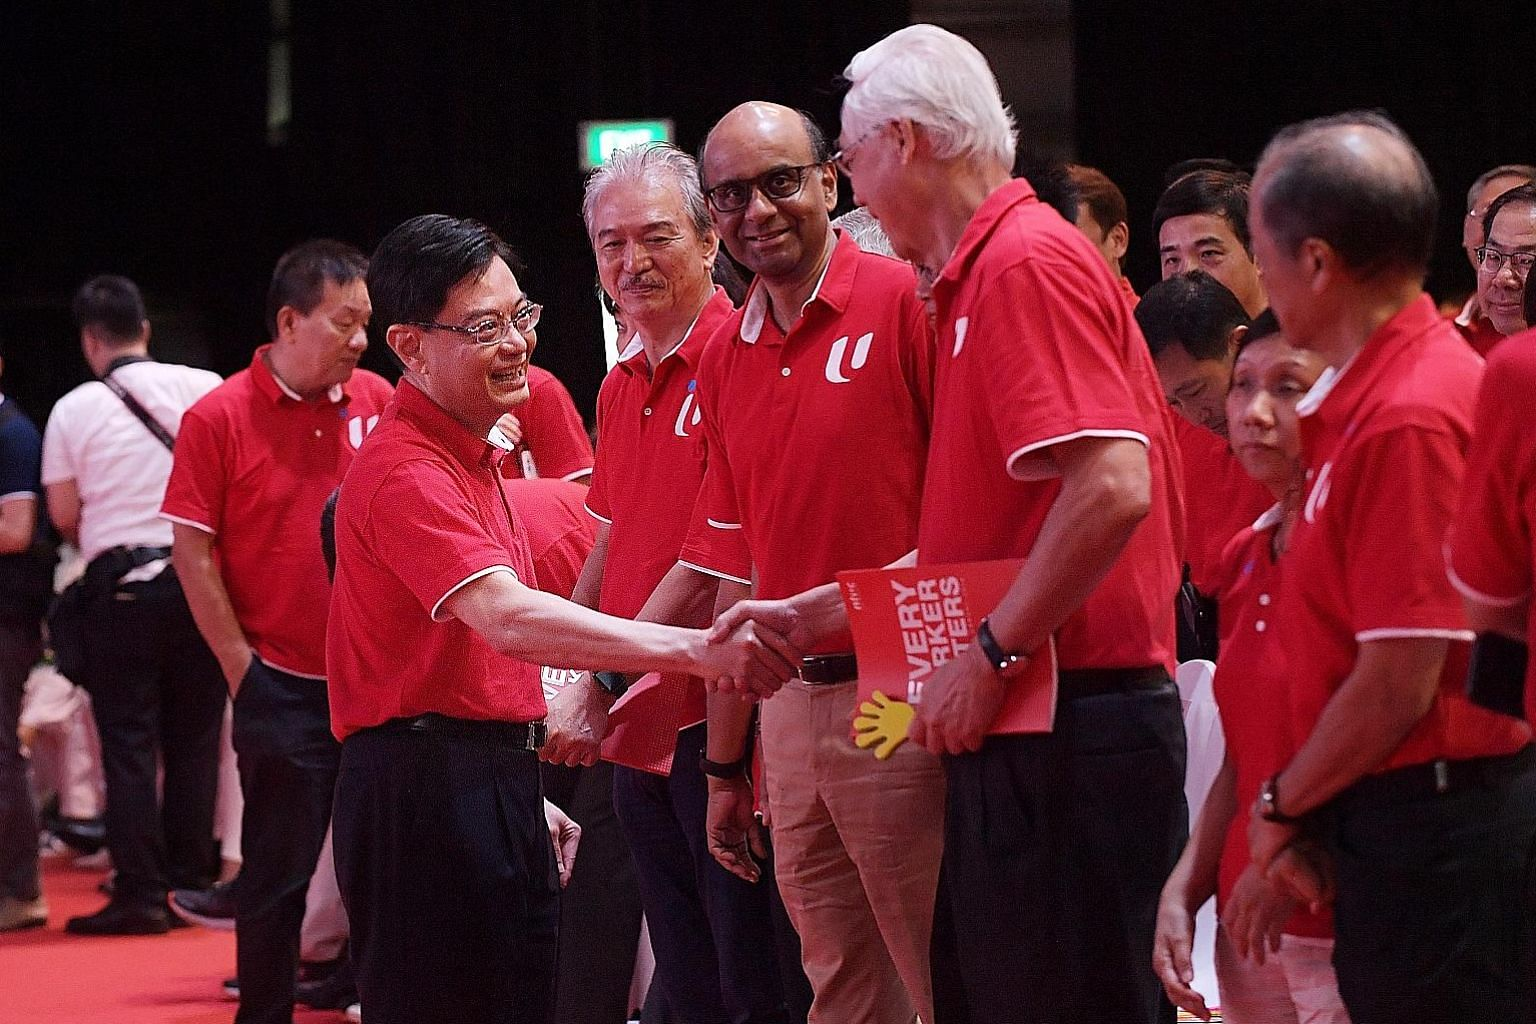 Deputy Prime Minister Heng Swee Keat greeting Emeritus Senior Minister Goh Chok Tong at Downtown East yesterday while Senior Minister Tharman Shanmugaratnam looked on. ST PHOTO: ALPHONSUS CHERN